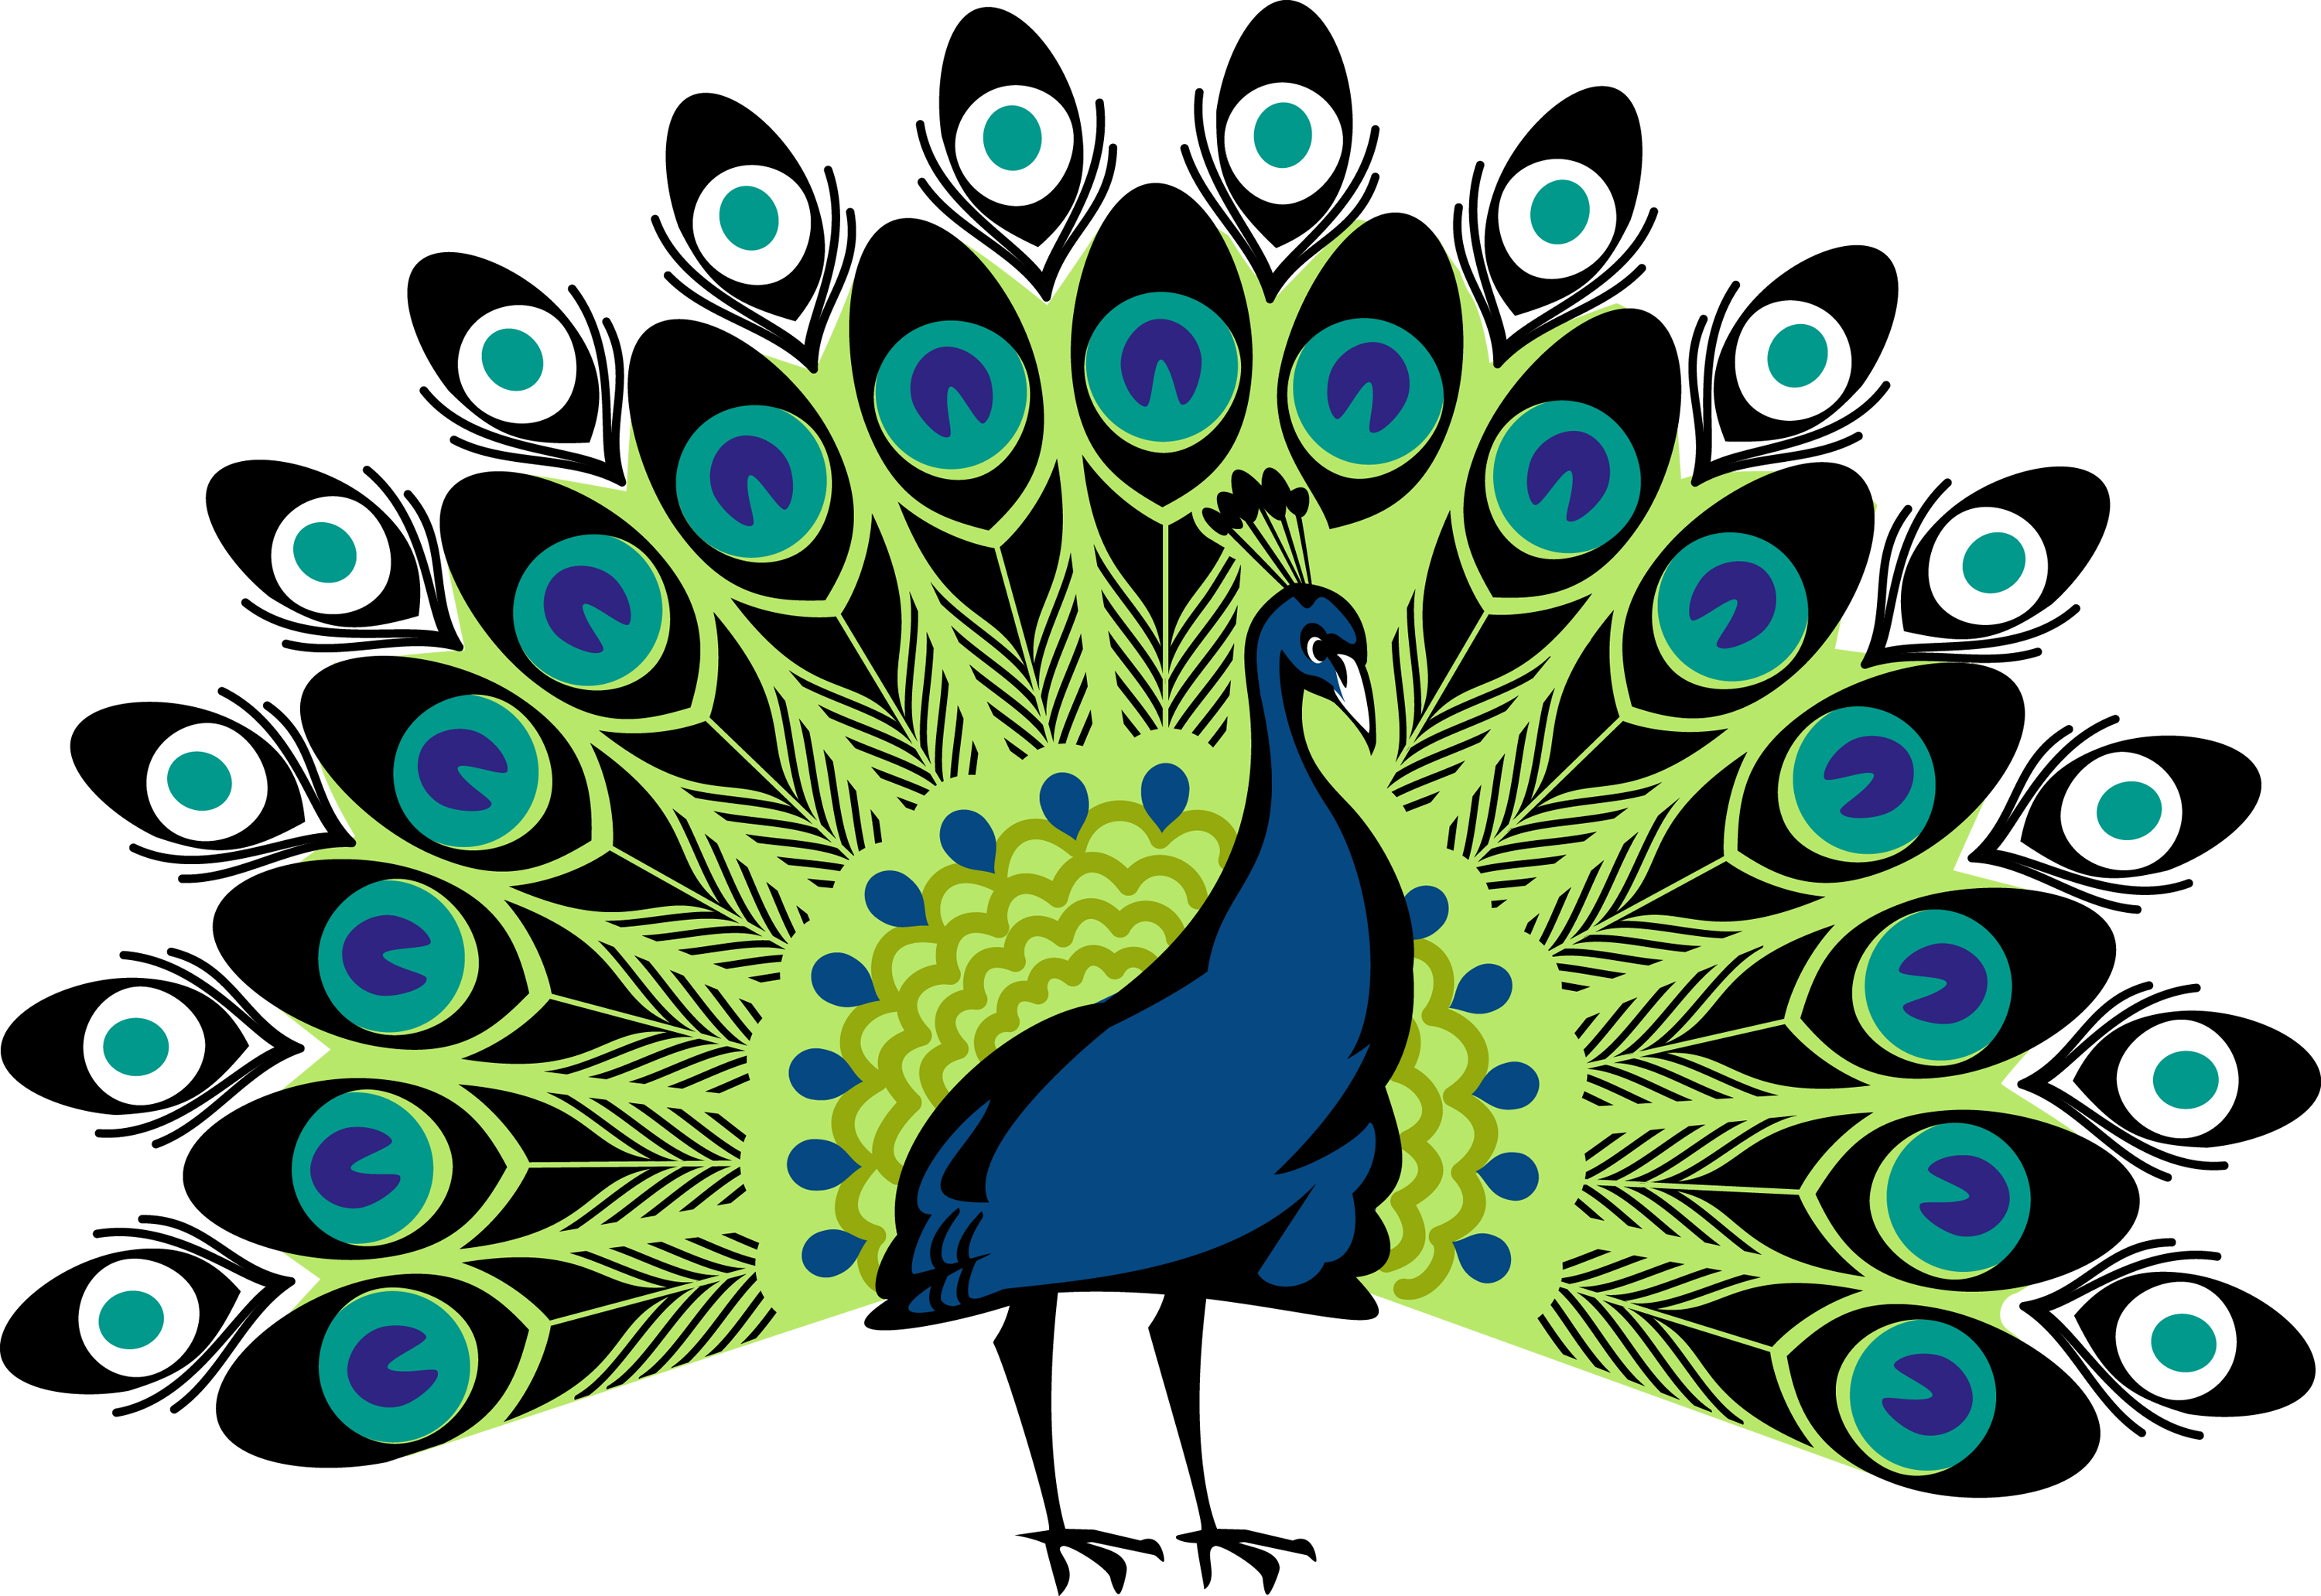 Peacock clipart line art. Png web icons download